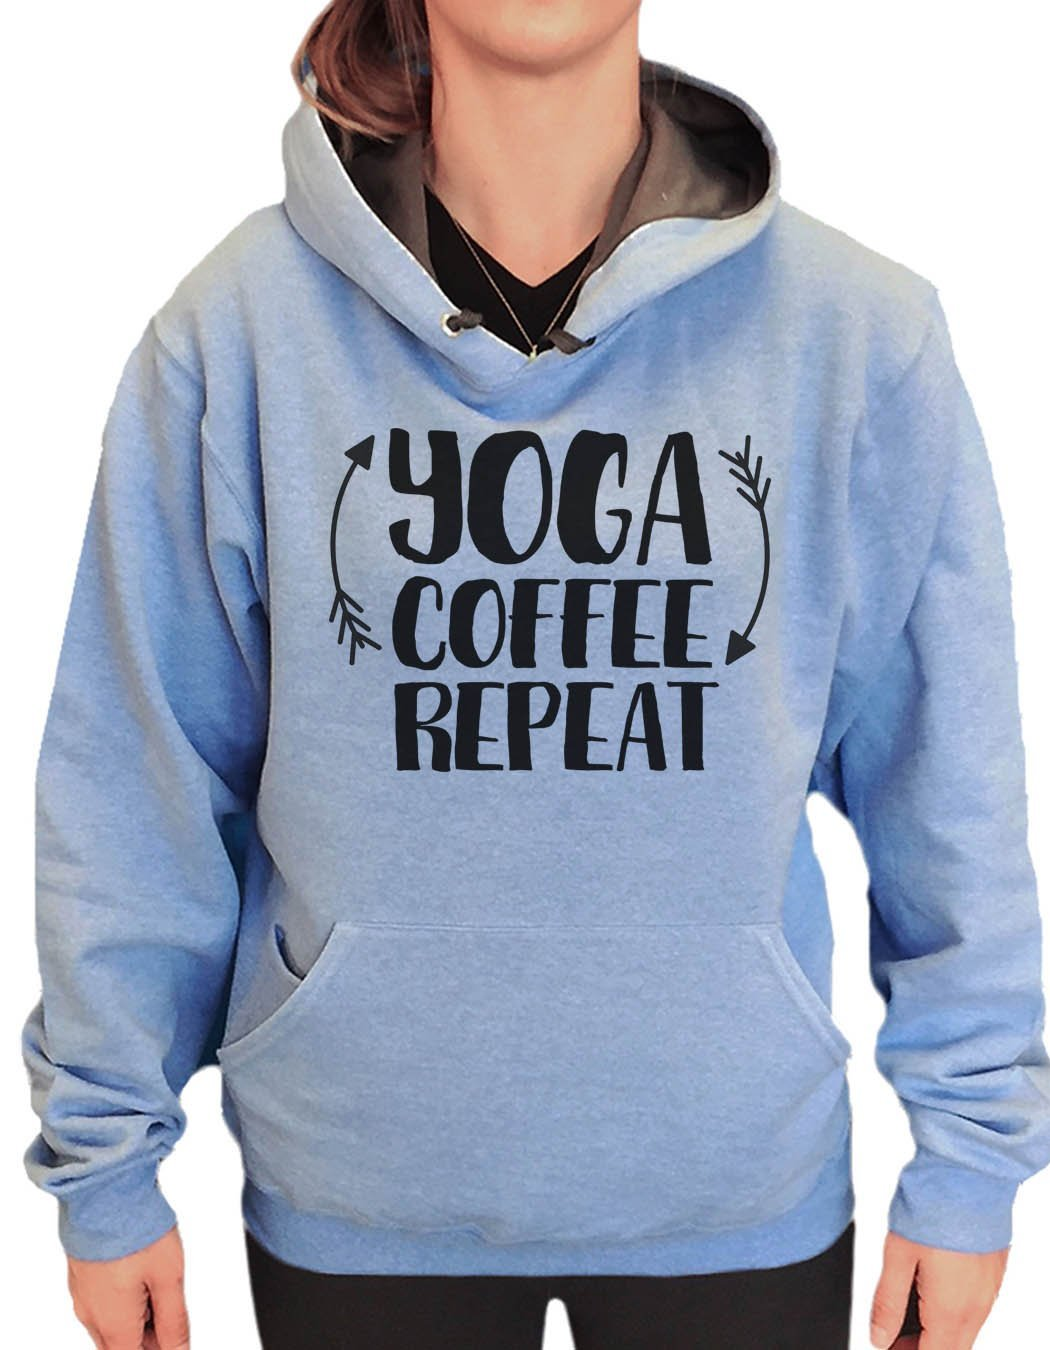 UNISEX HOODIE - Yoga Coffee Repeat - FUNNY MENS AND WOMENS HOODED SWEATSHIRTS - 2154 Funny Shirt Small / North Carolina Blue